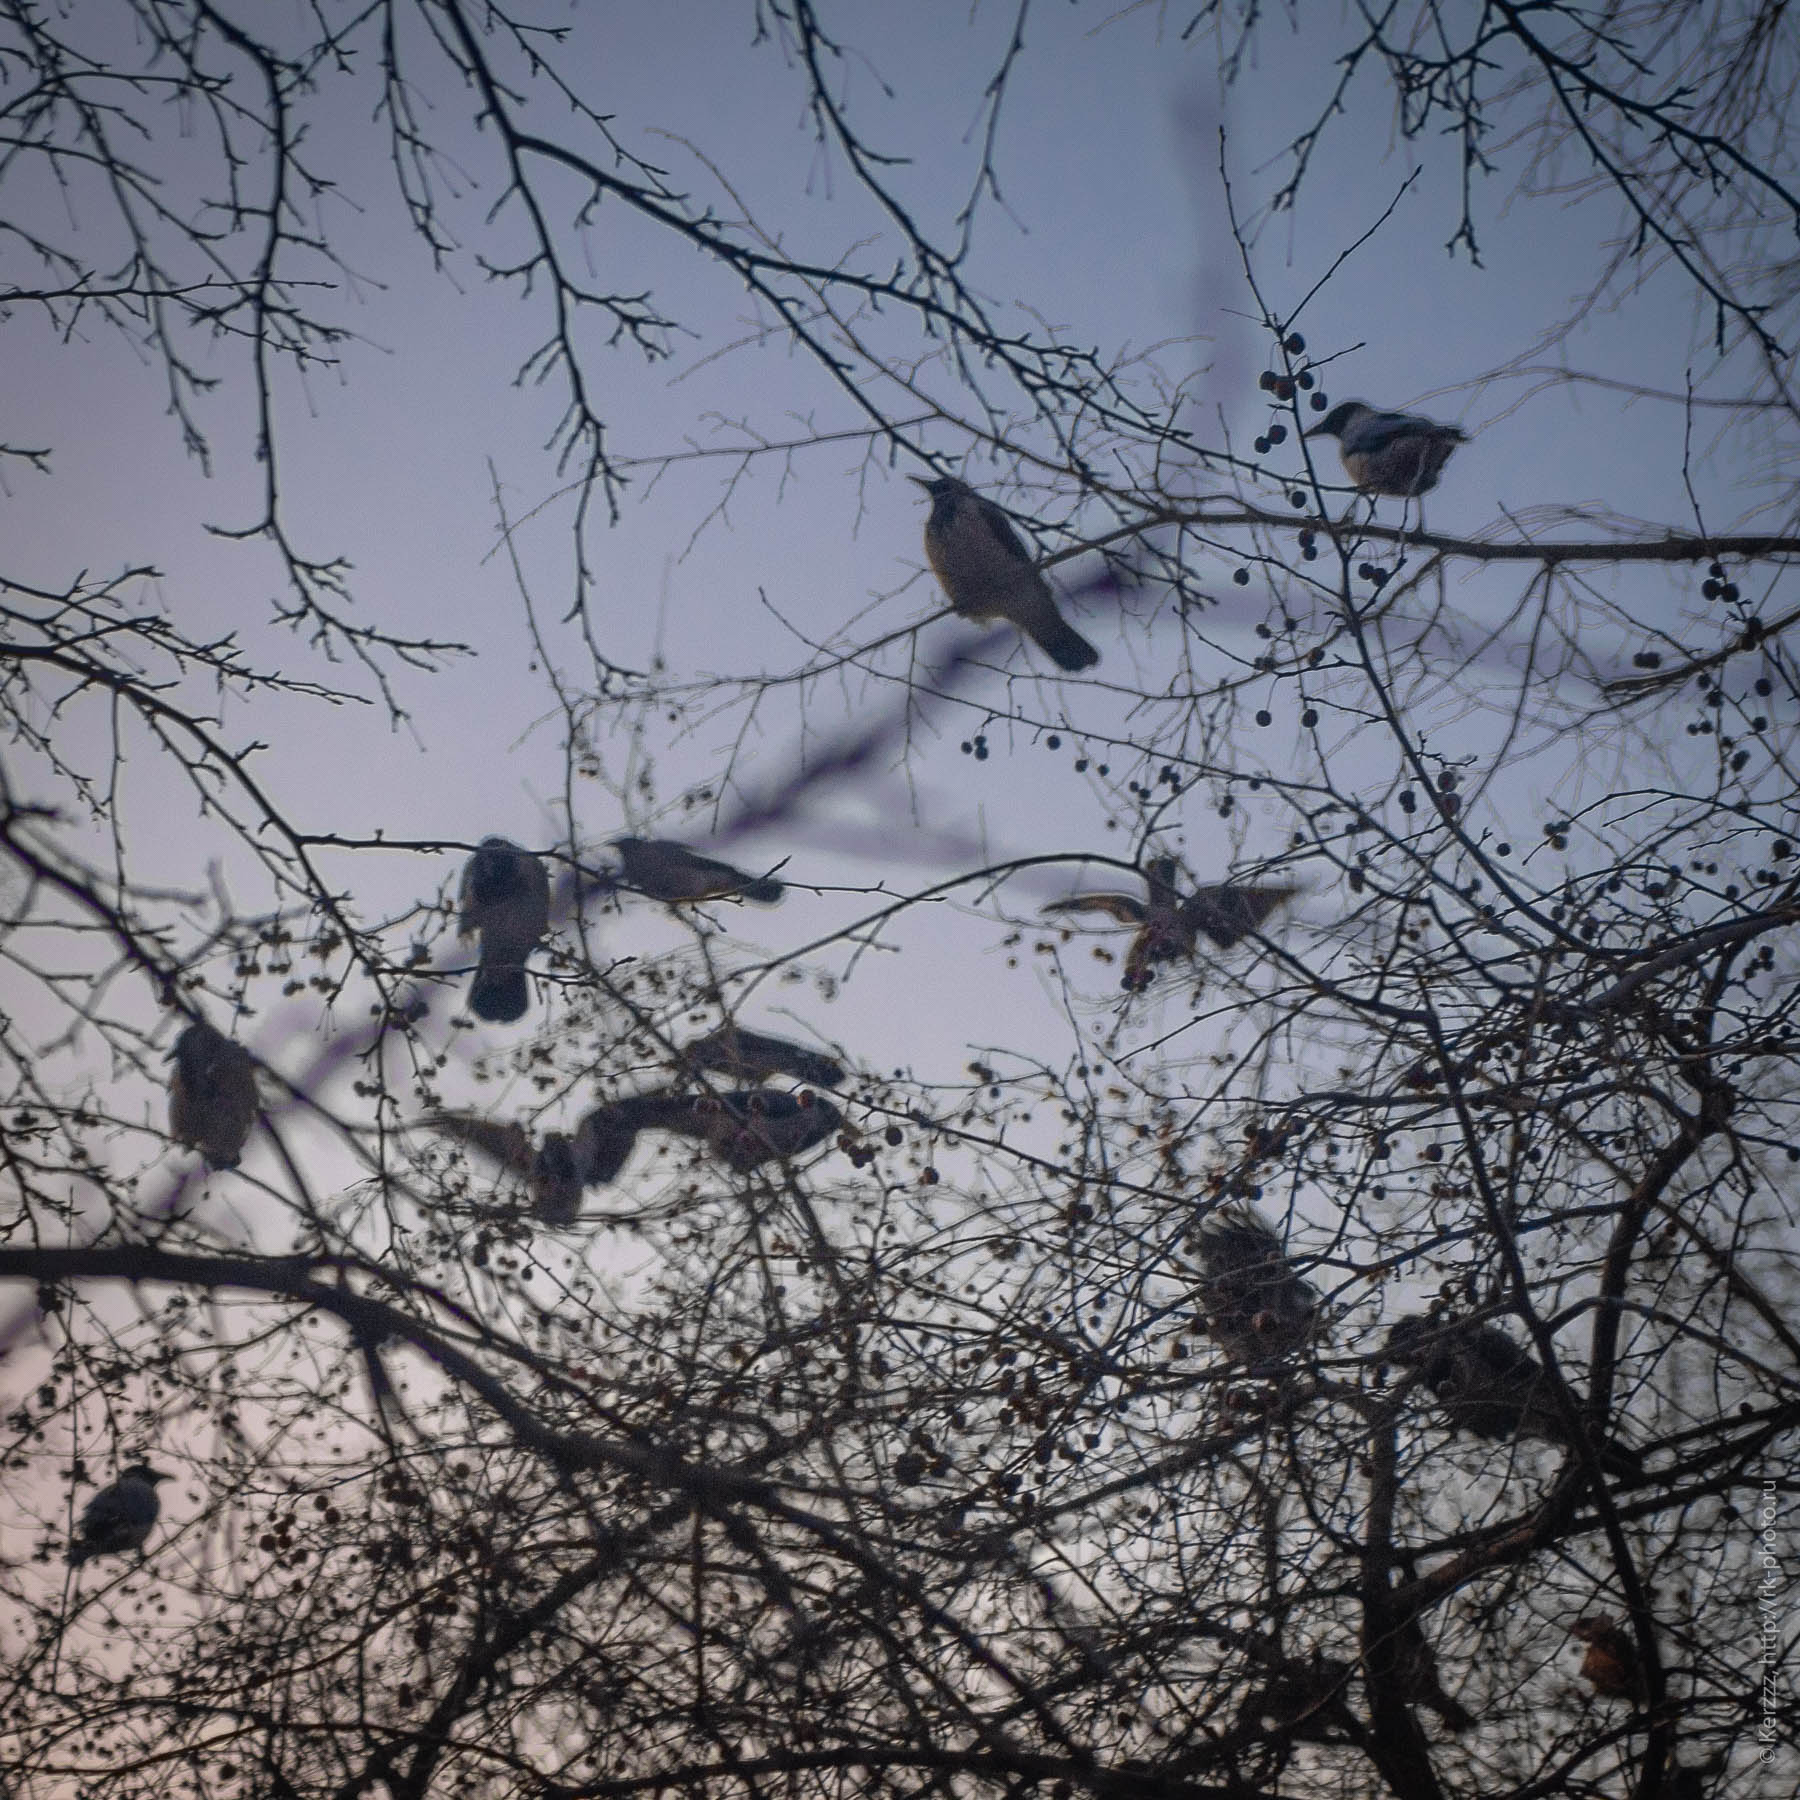 Вороны в ветвях. Crows in the branches.